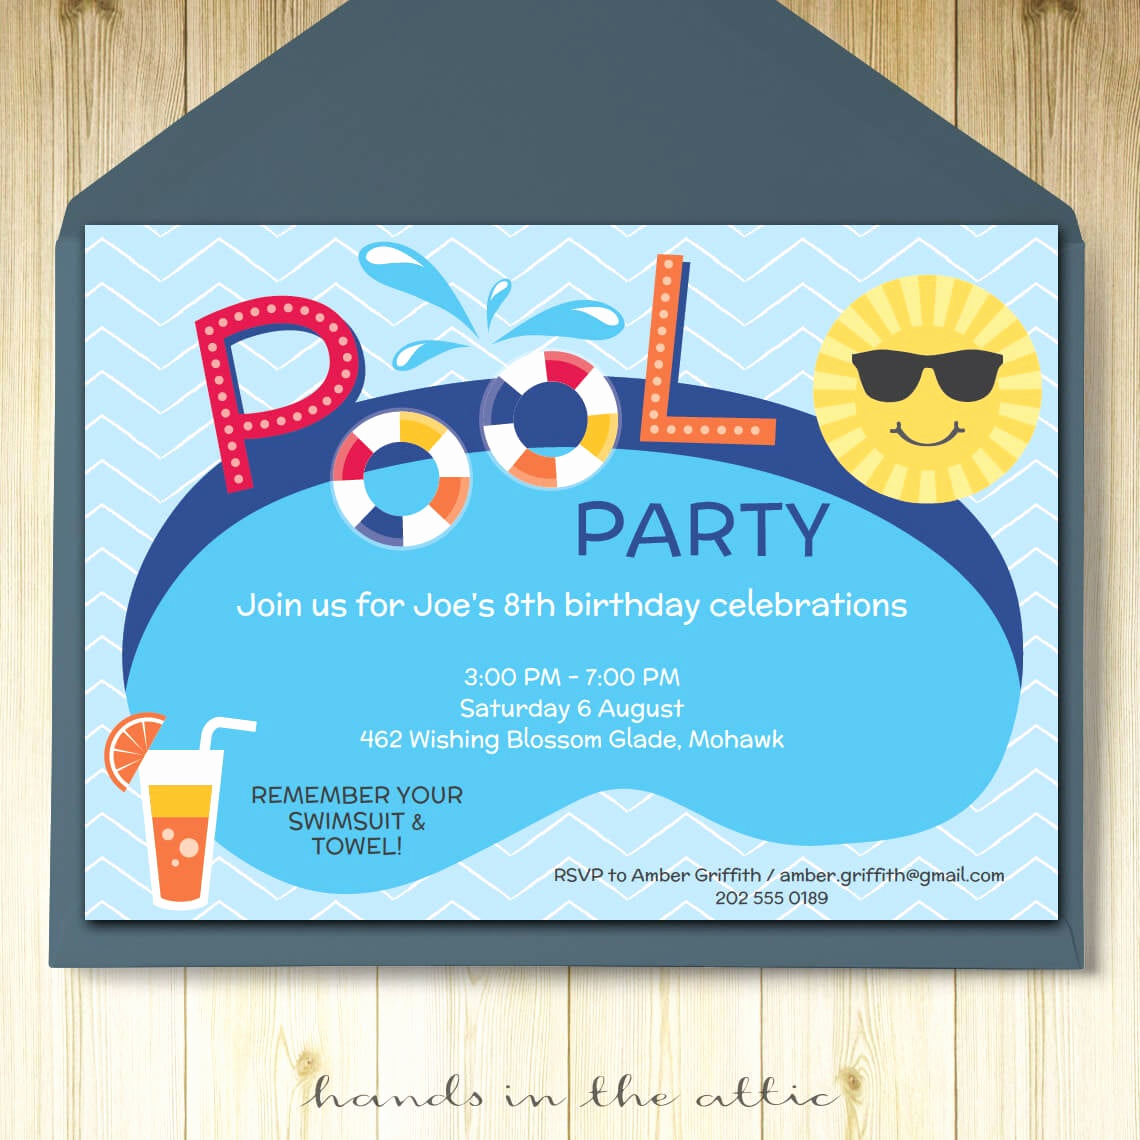 Pool Party Invitation Template Awesome Pool Party Invitation Card Editable Template Party Printable